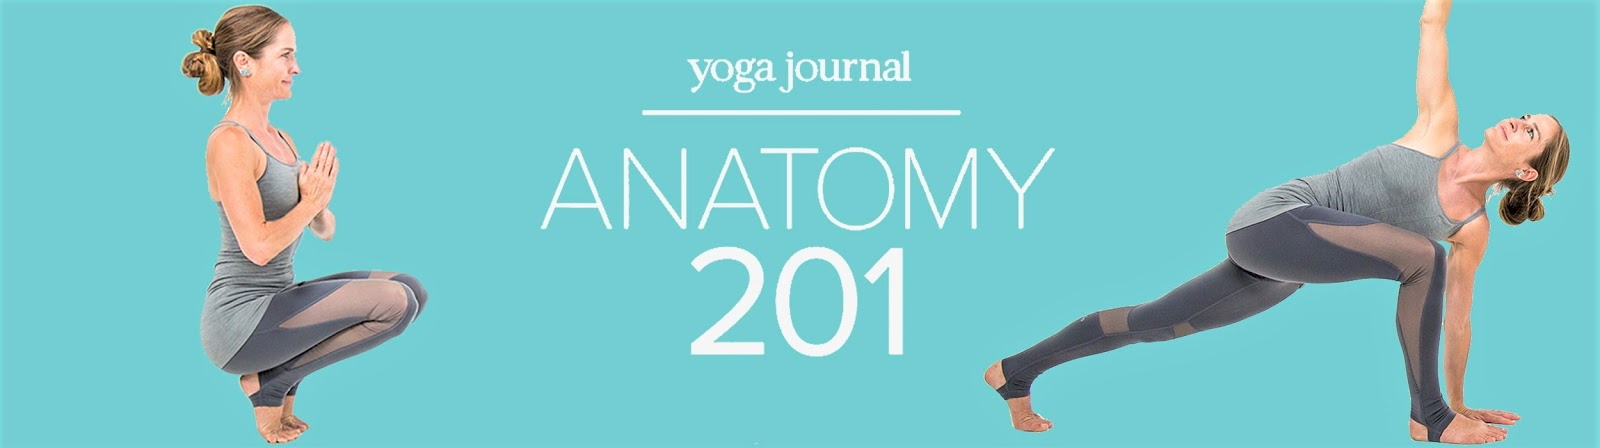 Art Of Motion Circle Of Friends Yoga Journal Anatomy 201 Online